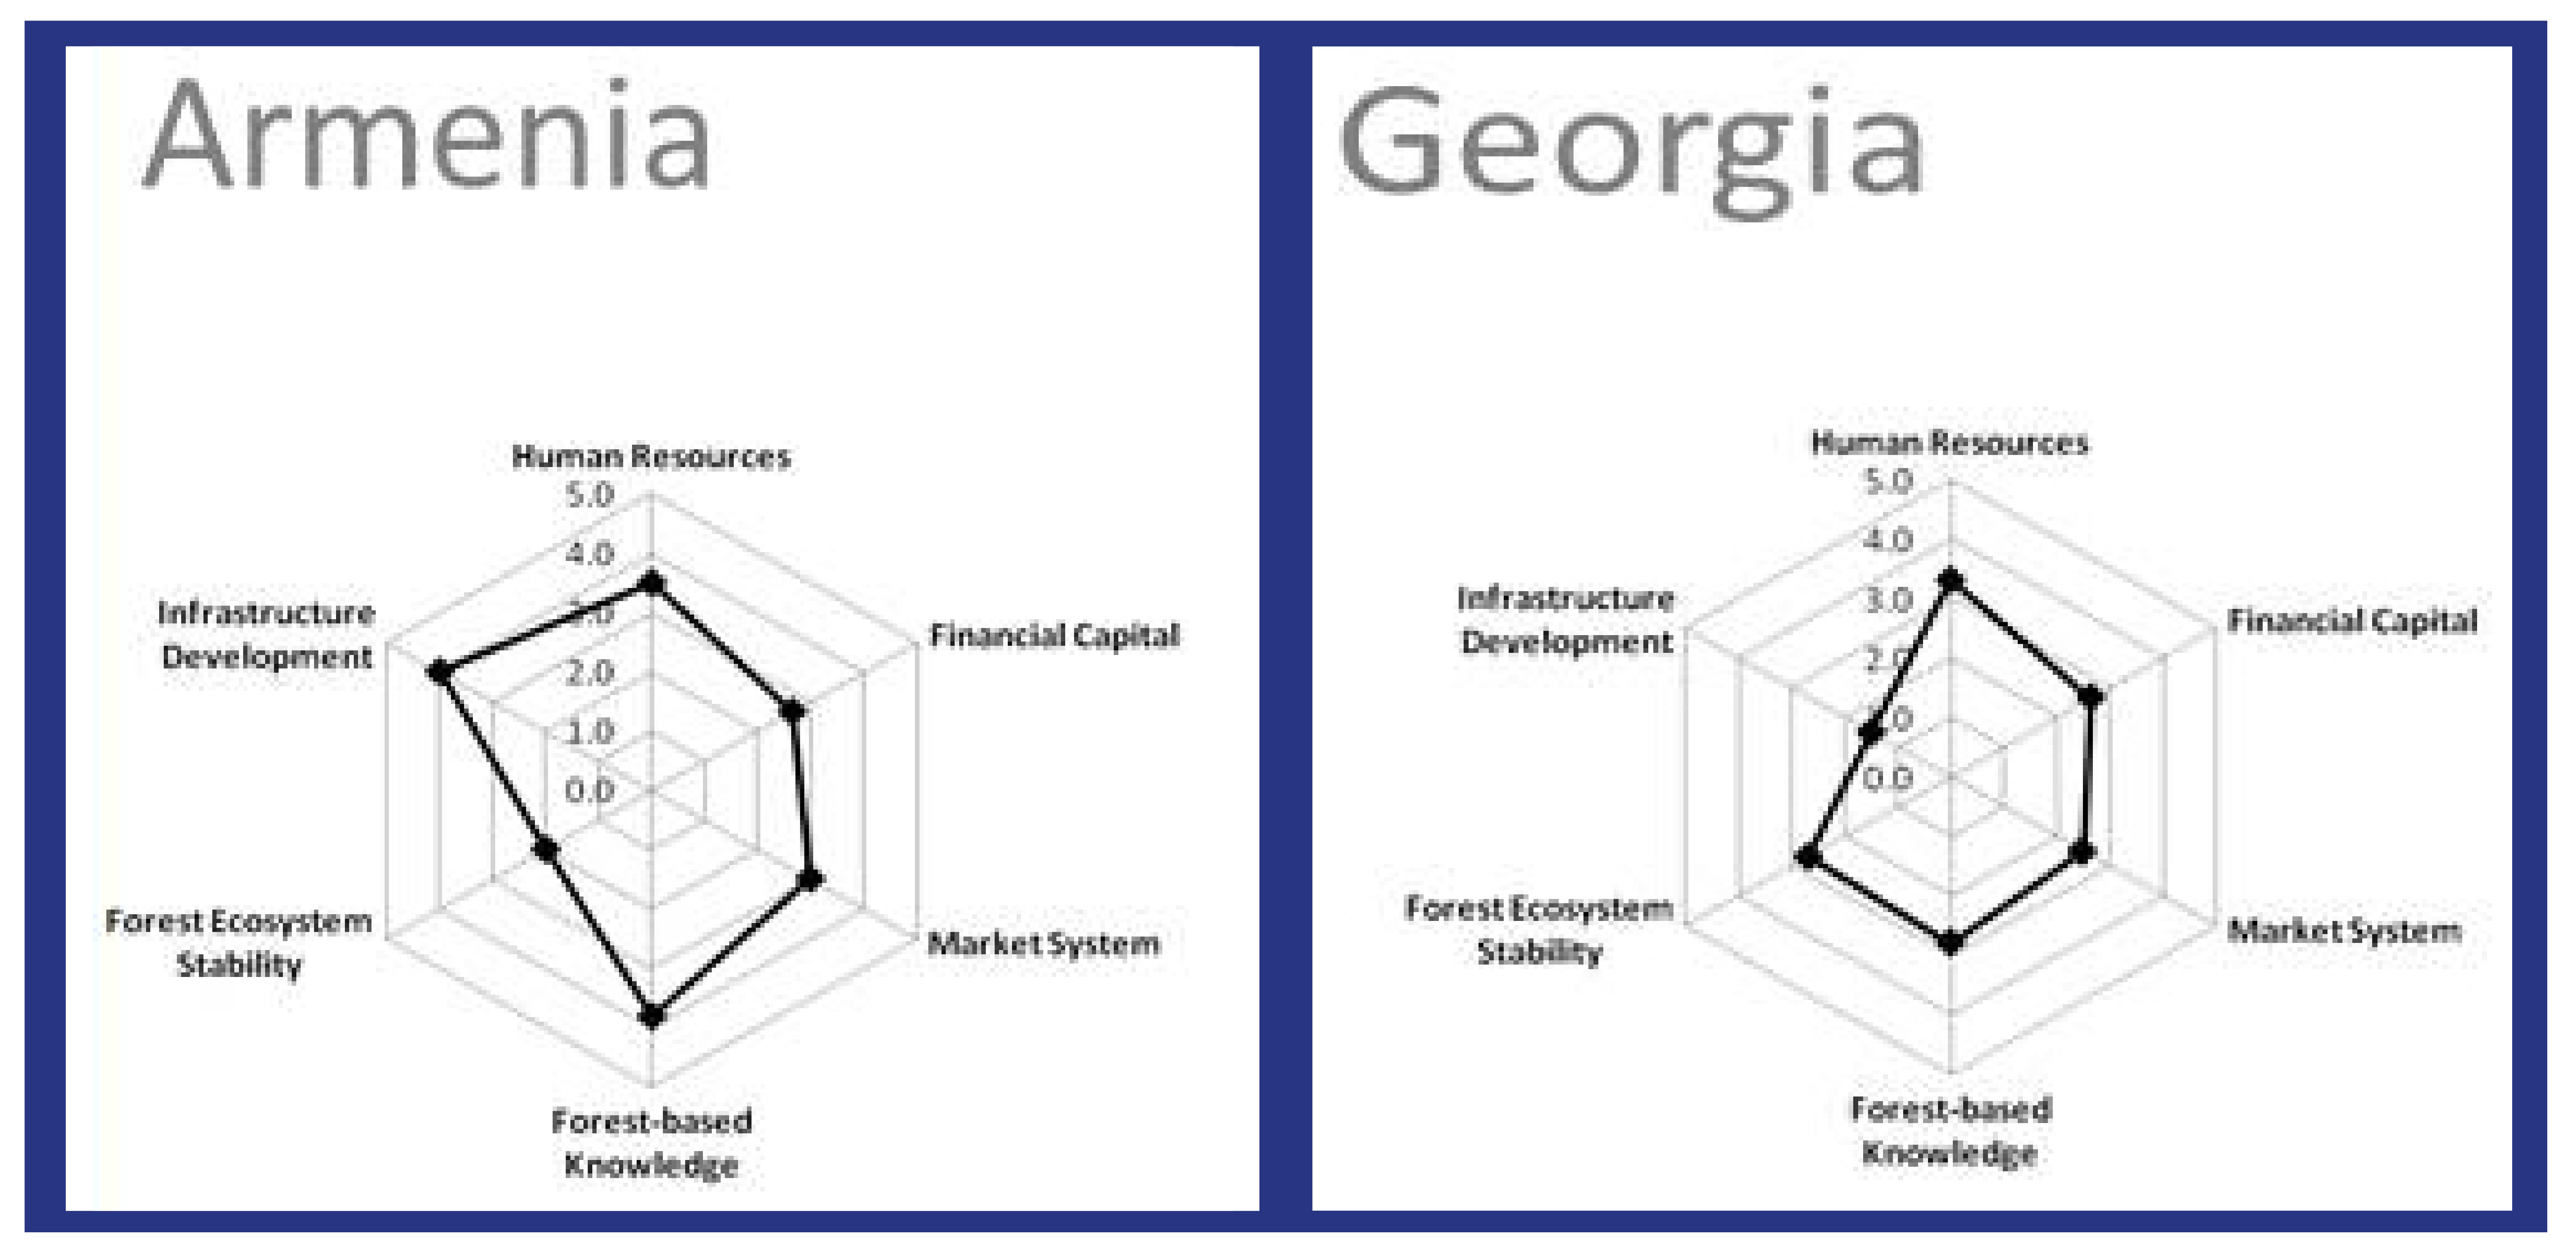 in the sample diagrams from communities in armenia and georgia, the shapes  highlight the differences in infrastructure, forest-based knowledge and  forest